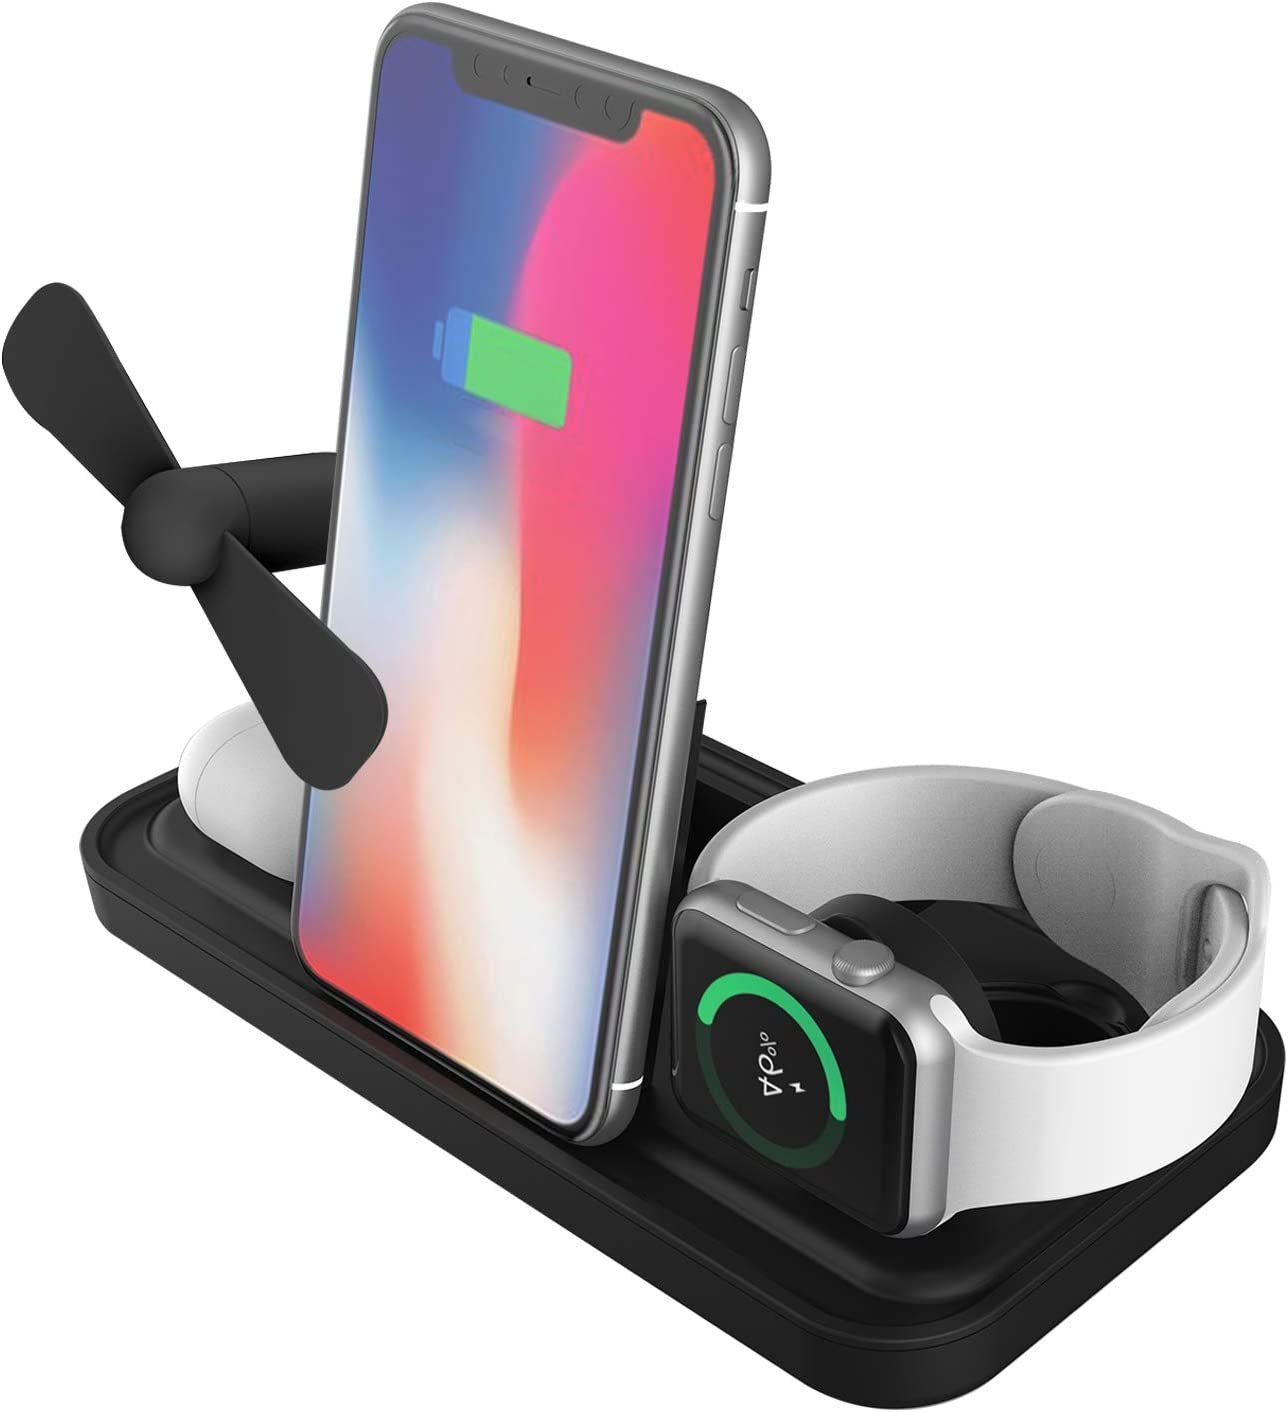 Wireless Charger, Wireless Charging Station 3 in 1 Charging Dock, Qi-Certified Magnetic Charger Stand for iPhone 12/11 Series/SE/XS/XR/8, Apple iWatch Series 5/4/3/2/1, AirPods, (with a Mini Fan)